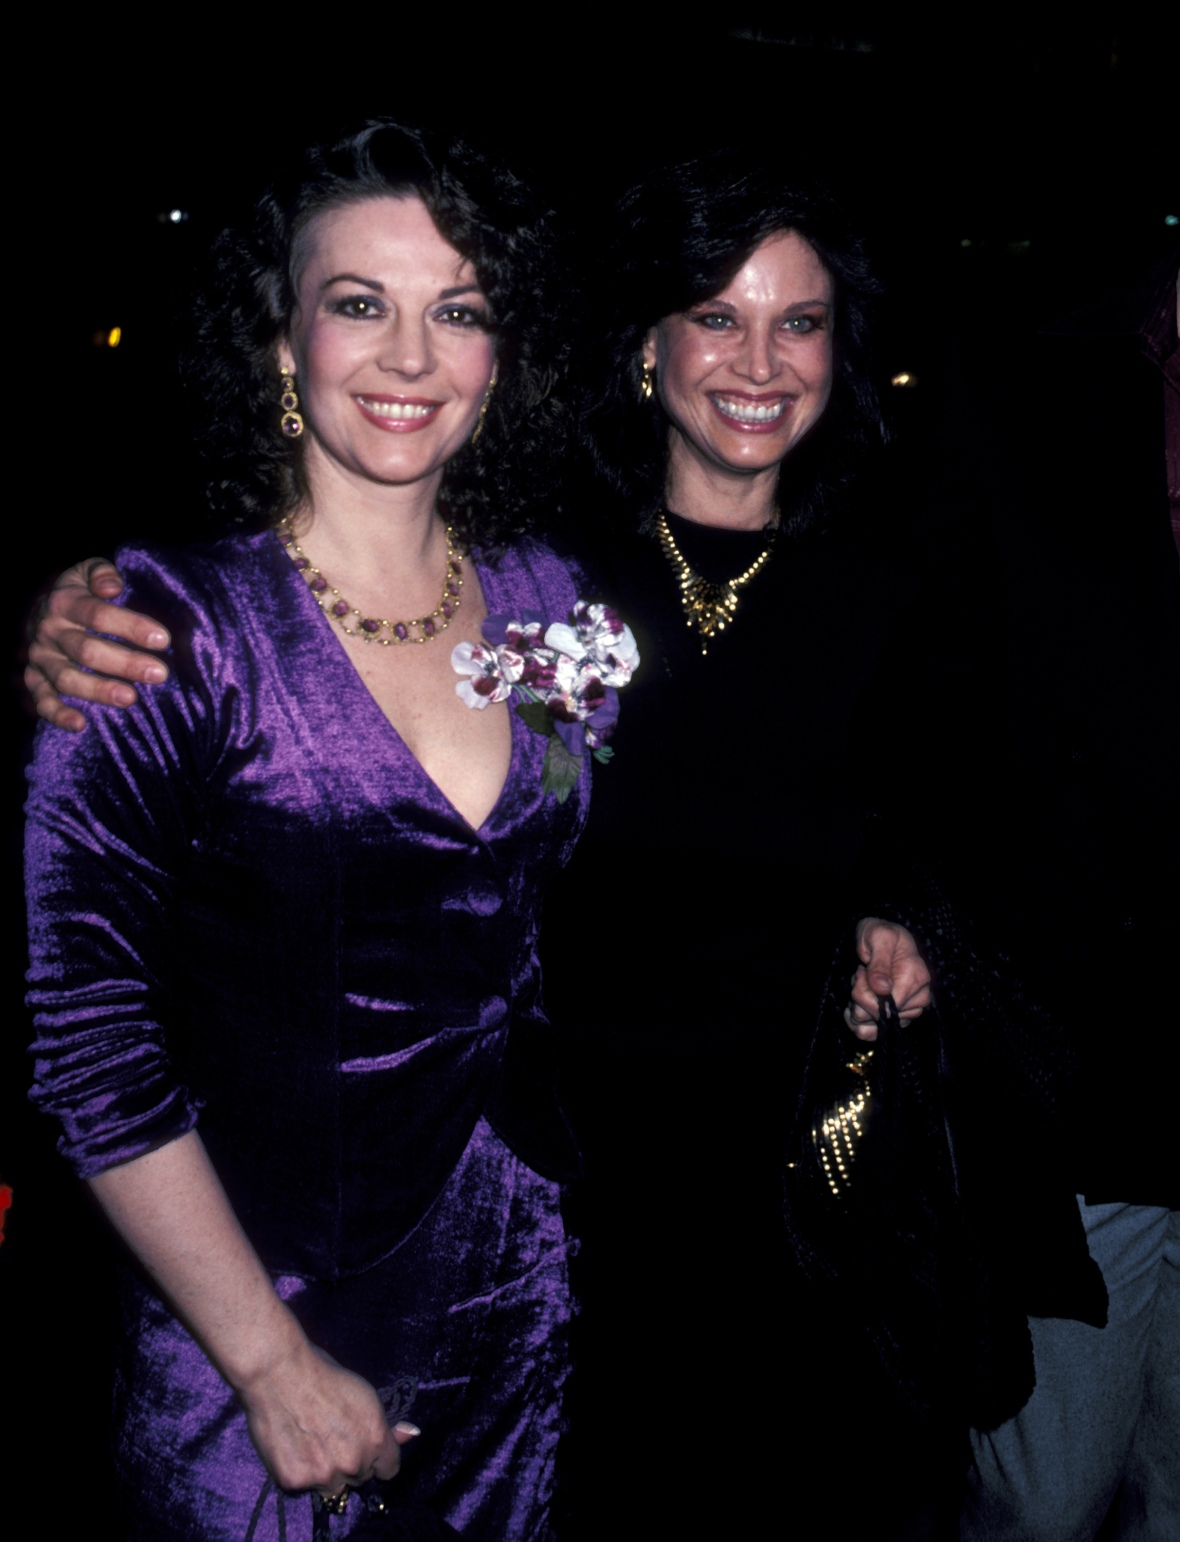 natalie wood and her sister lana getty images